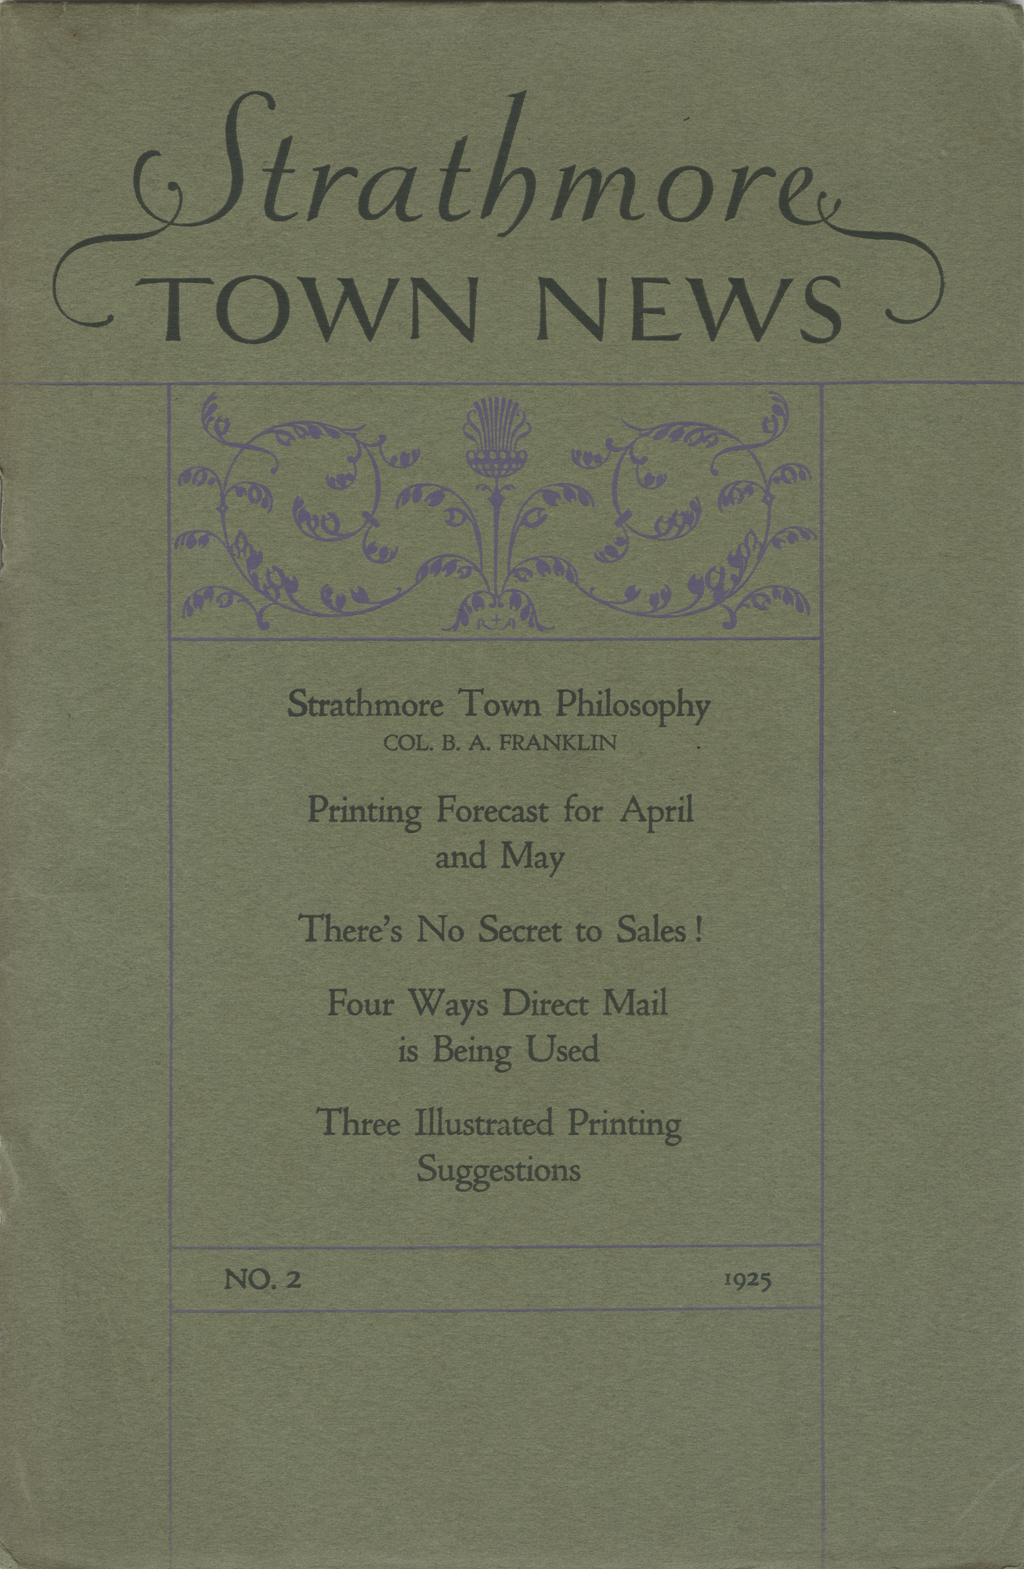 Cover of Strathmore Town News no. 2 (1925). Design by Guido and Lawrence Rosa.